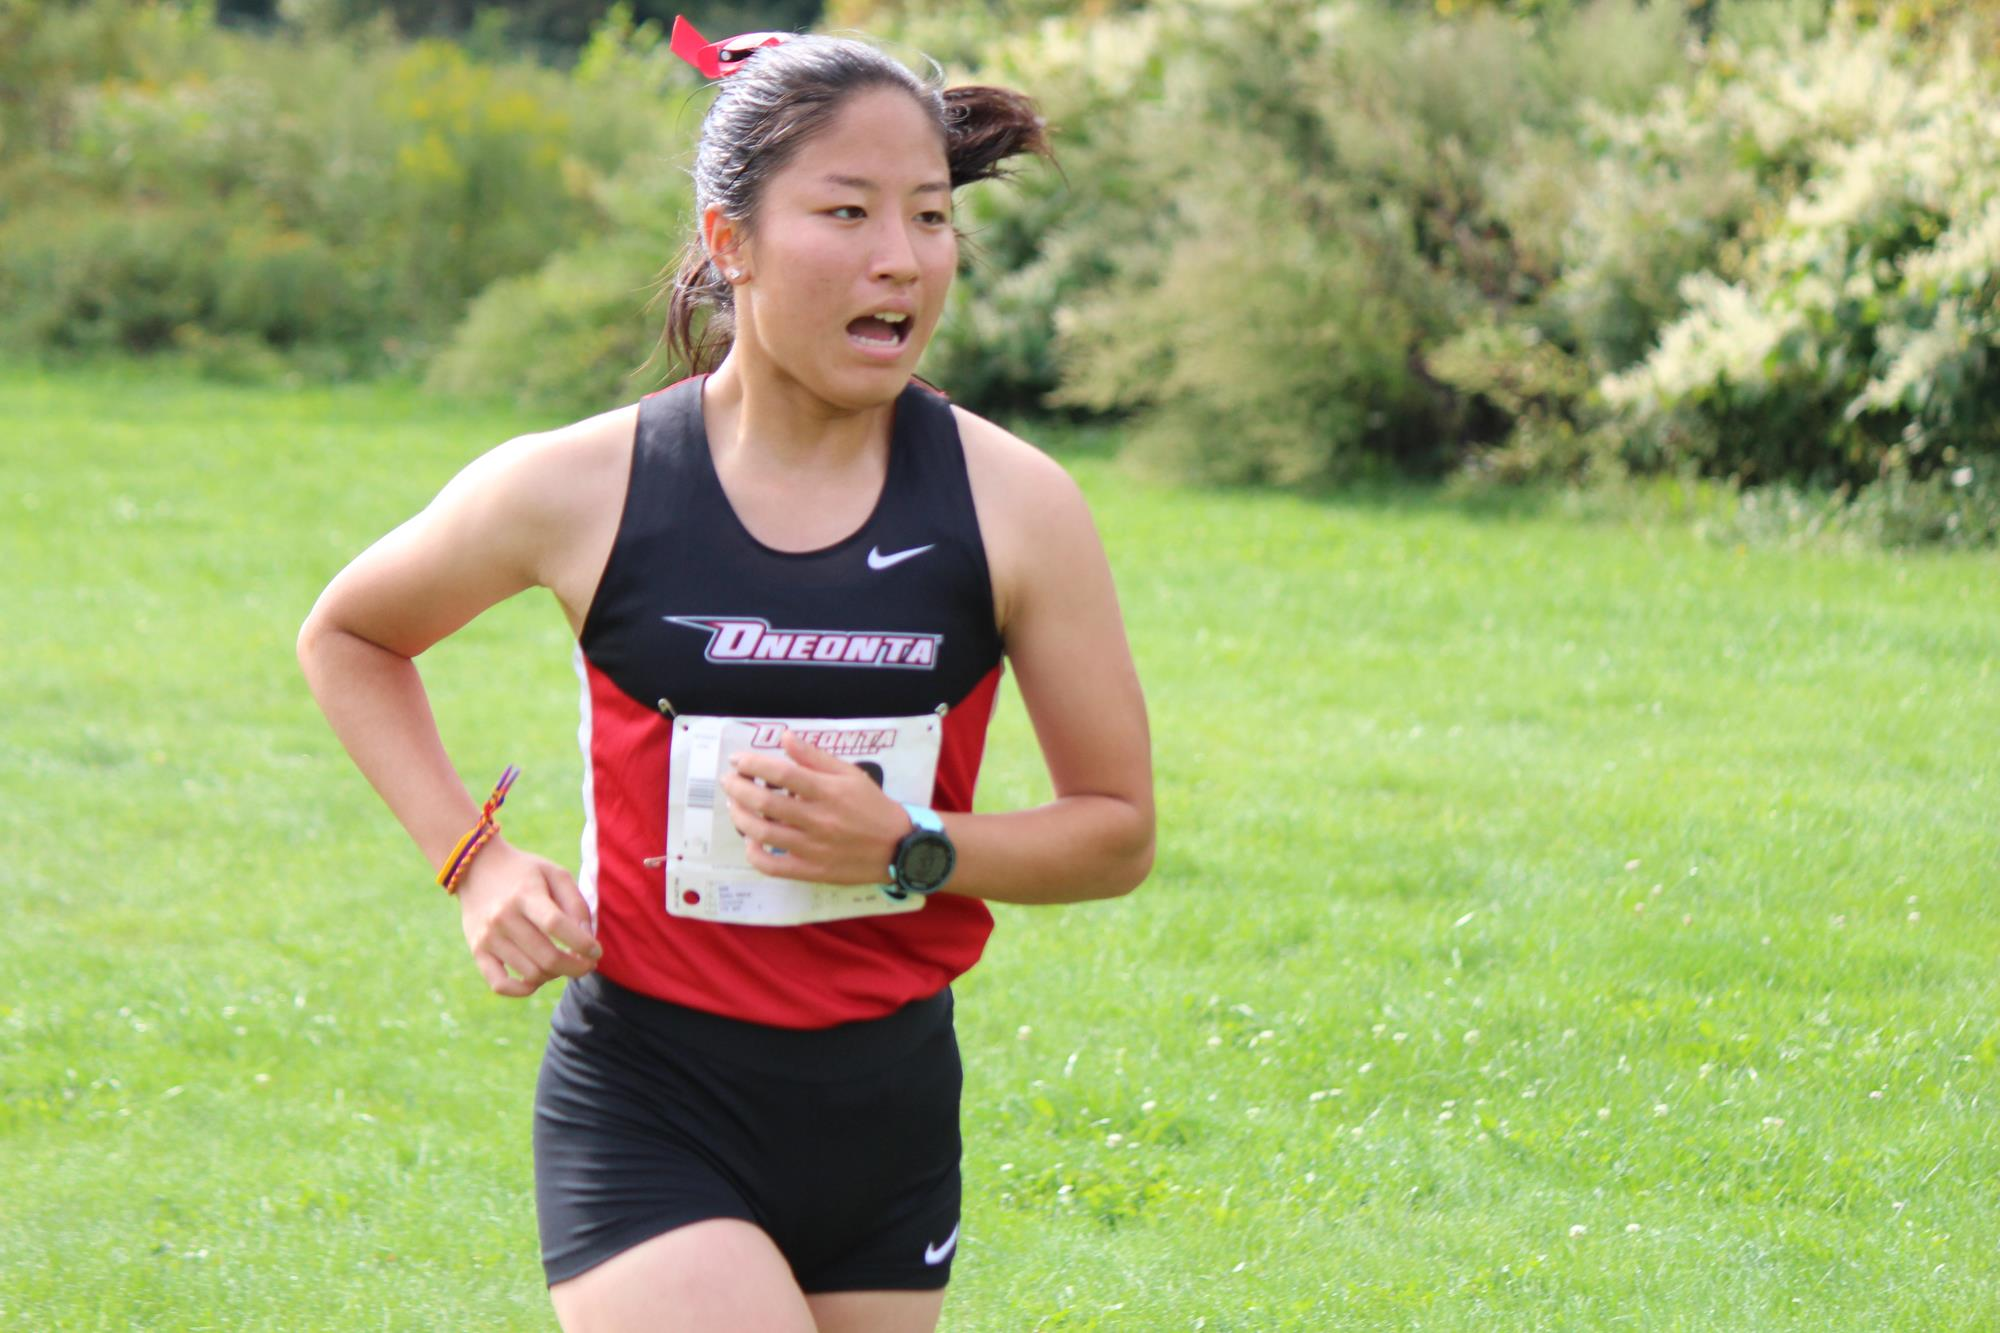 Oneonta State Oneonta State Womens College Cross Country ...